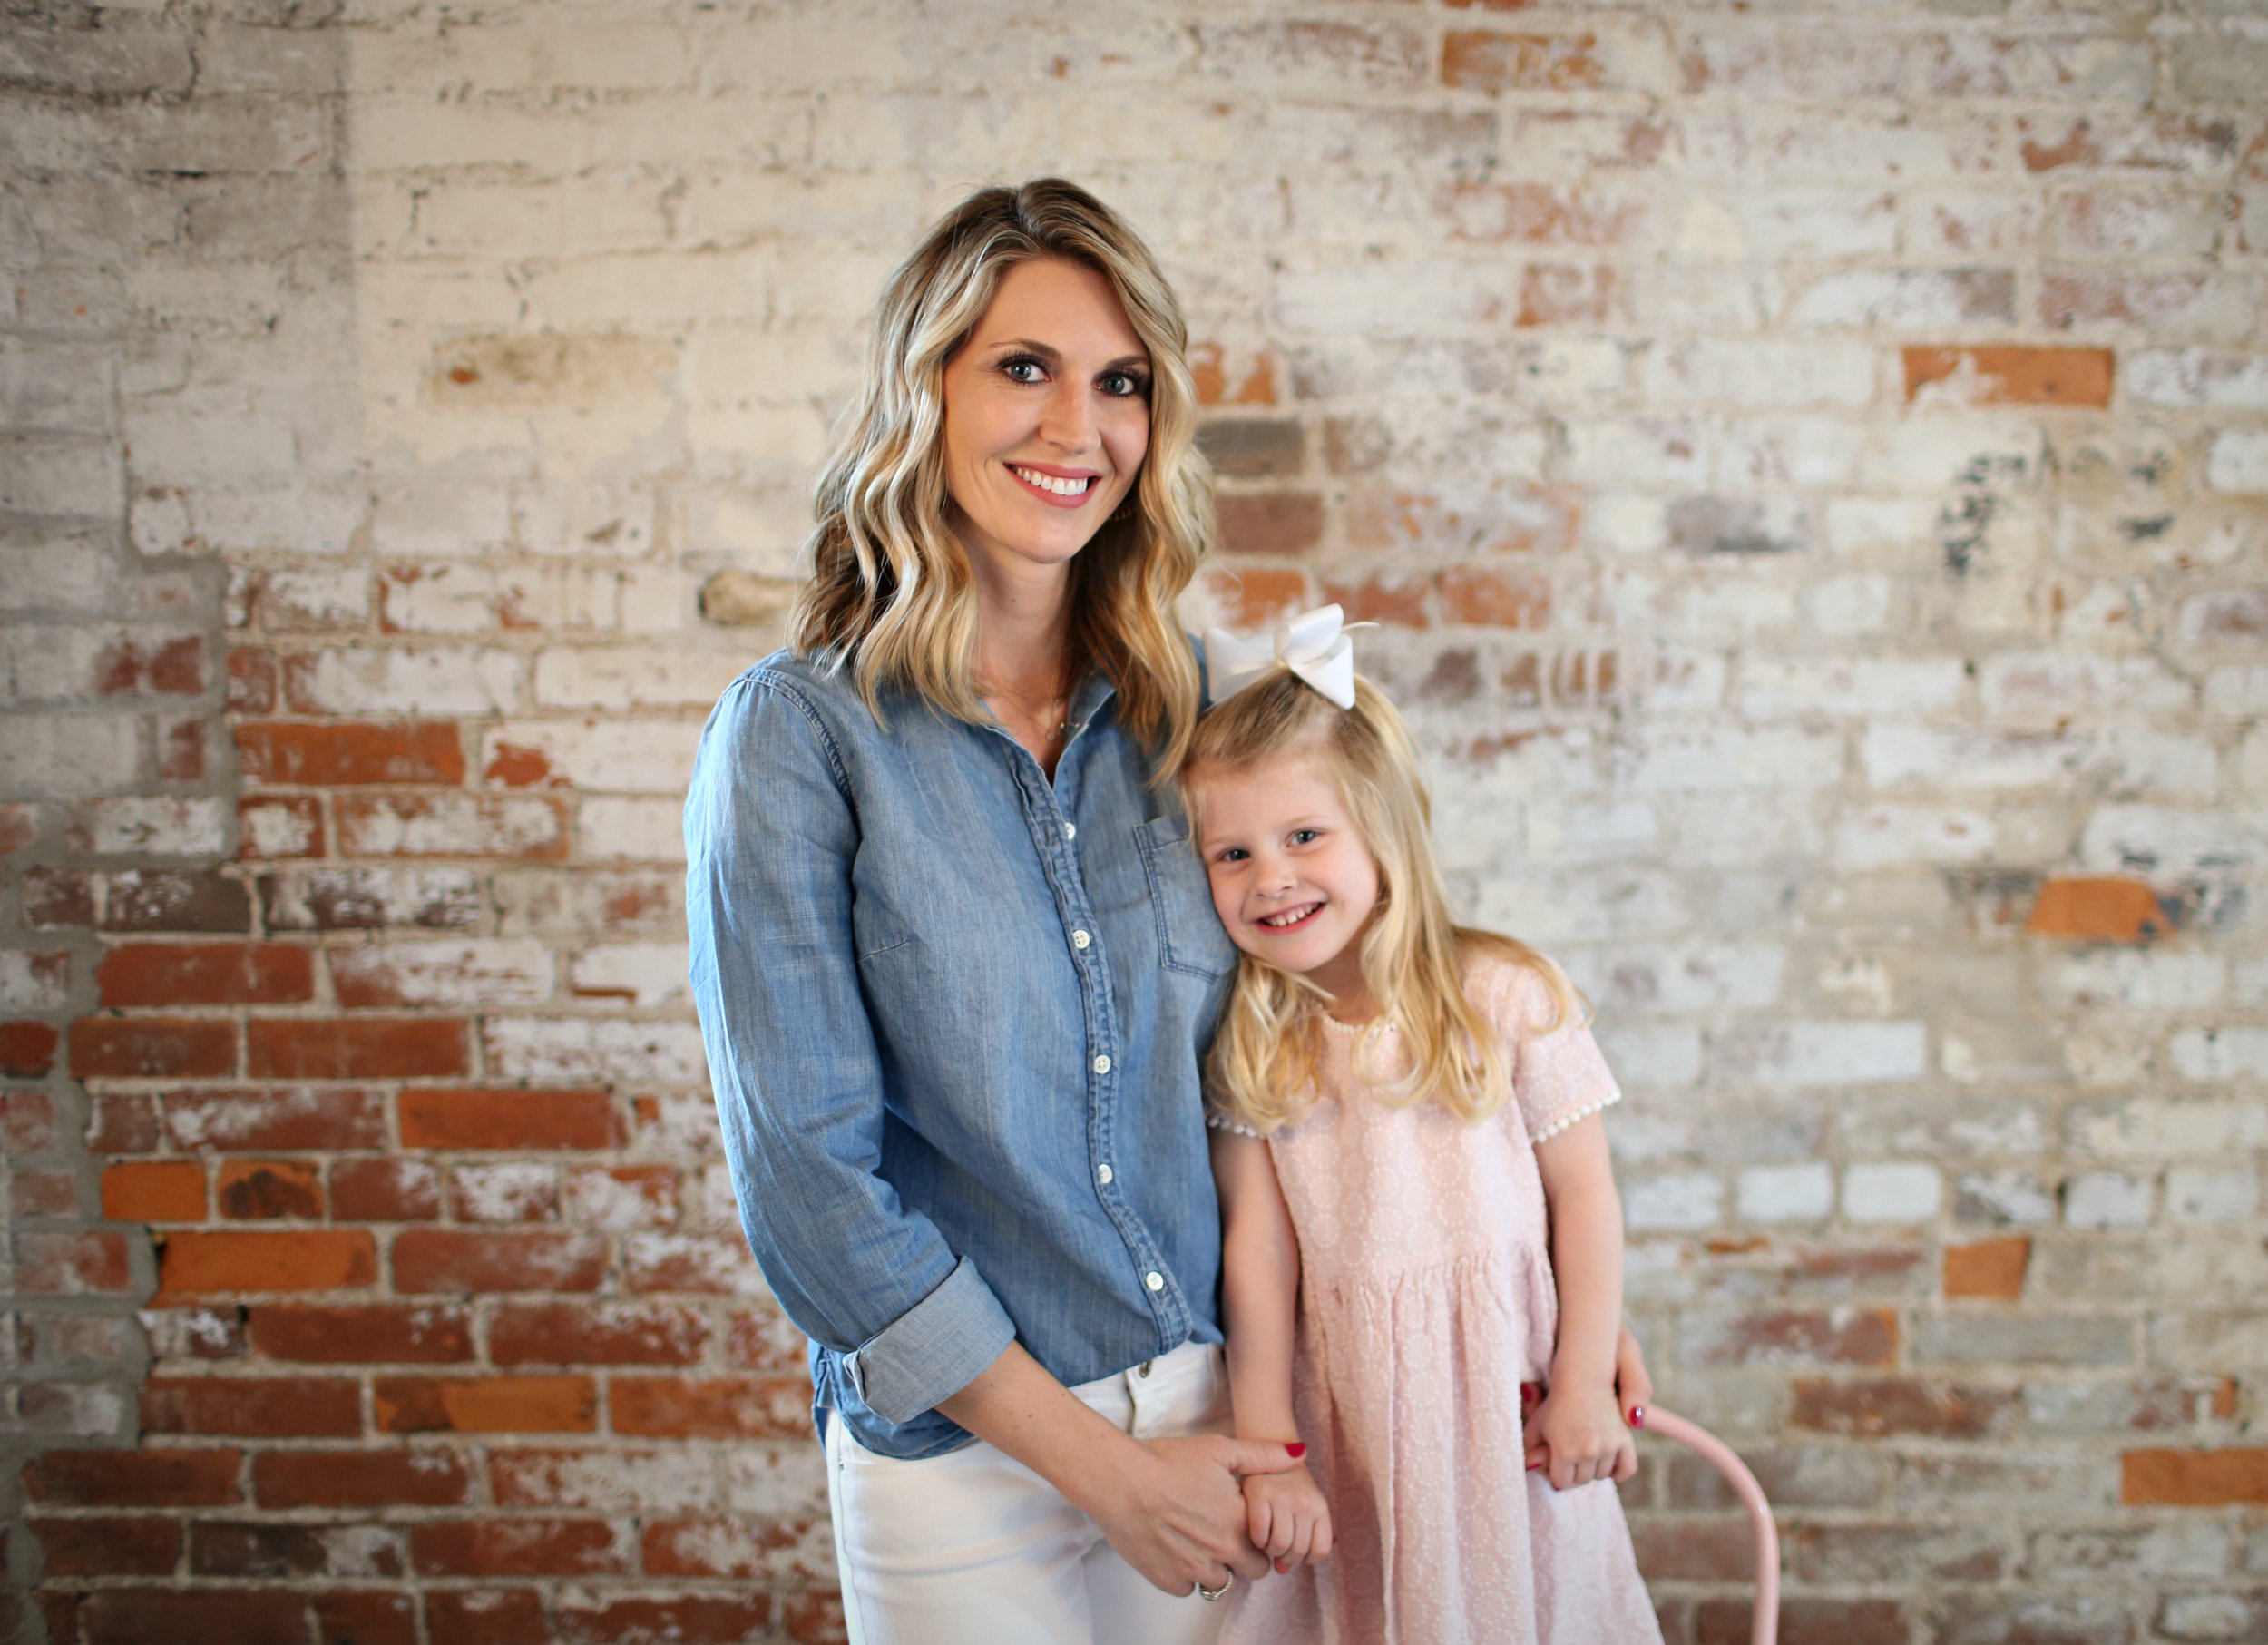 Fashion blogger, Lady and Red with daughter R posing for a photo in front of an old brick wall background | LadyandRed.com